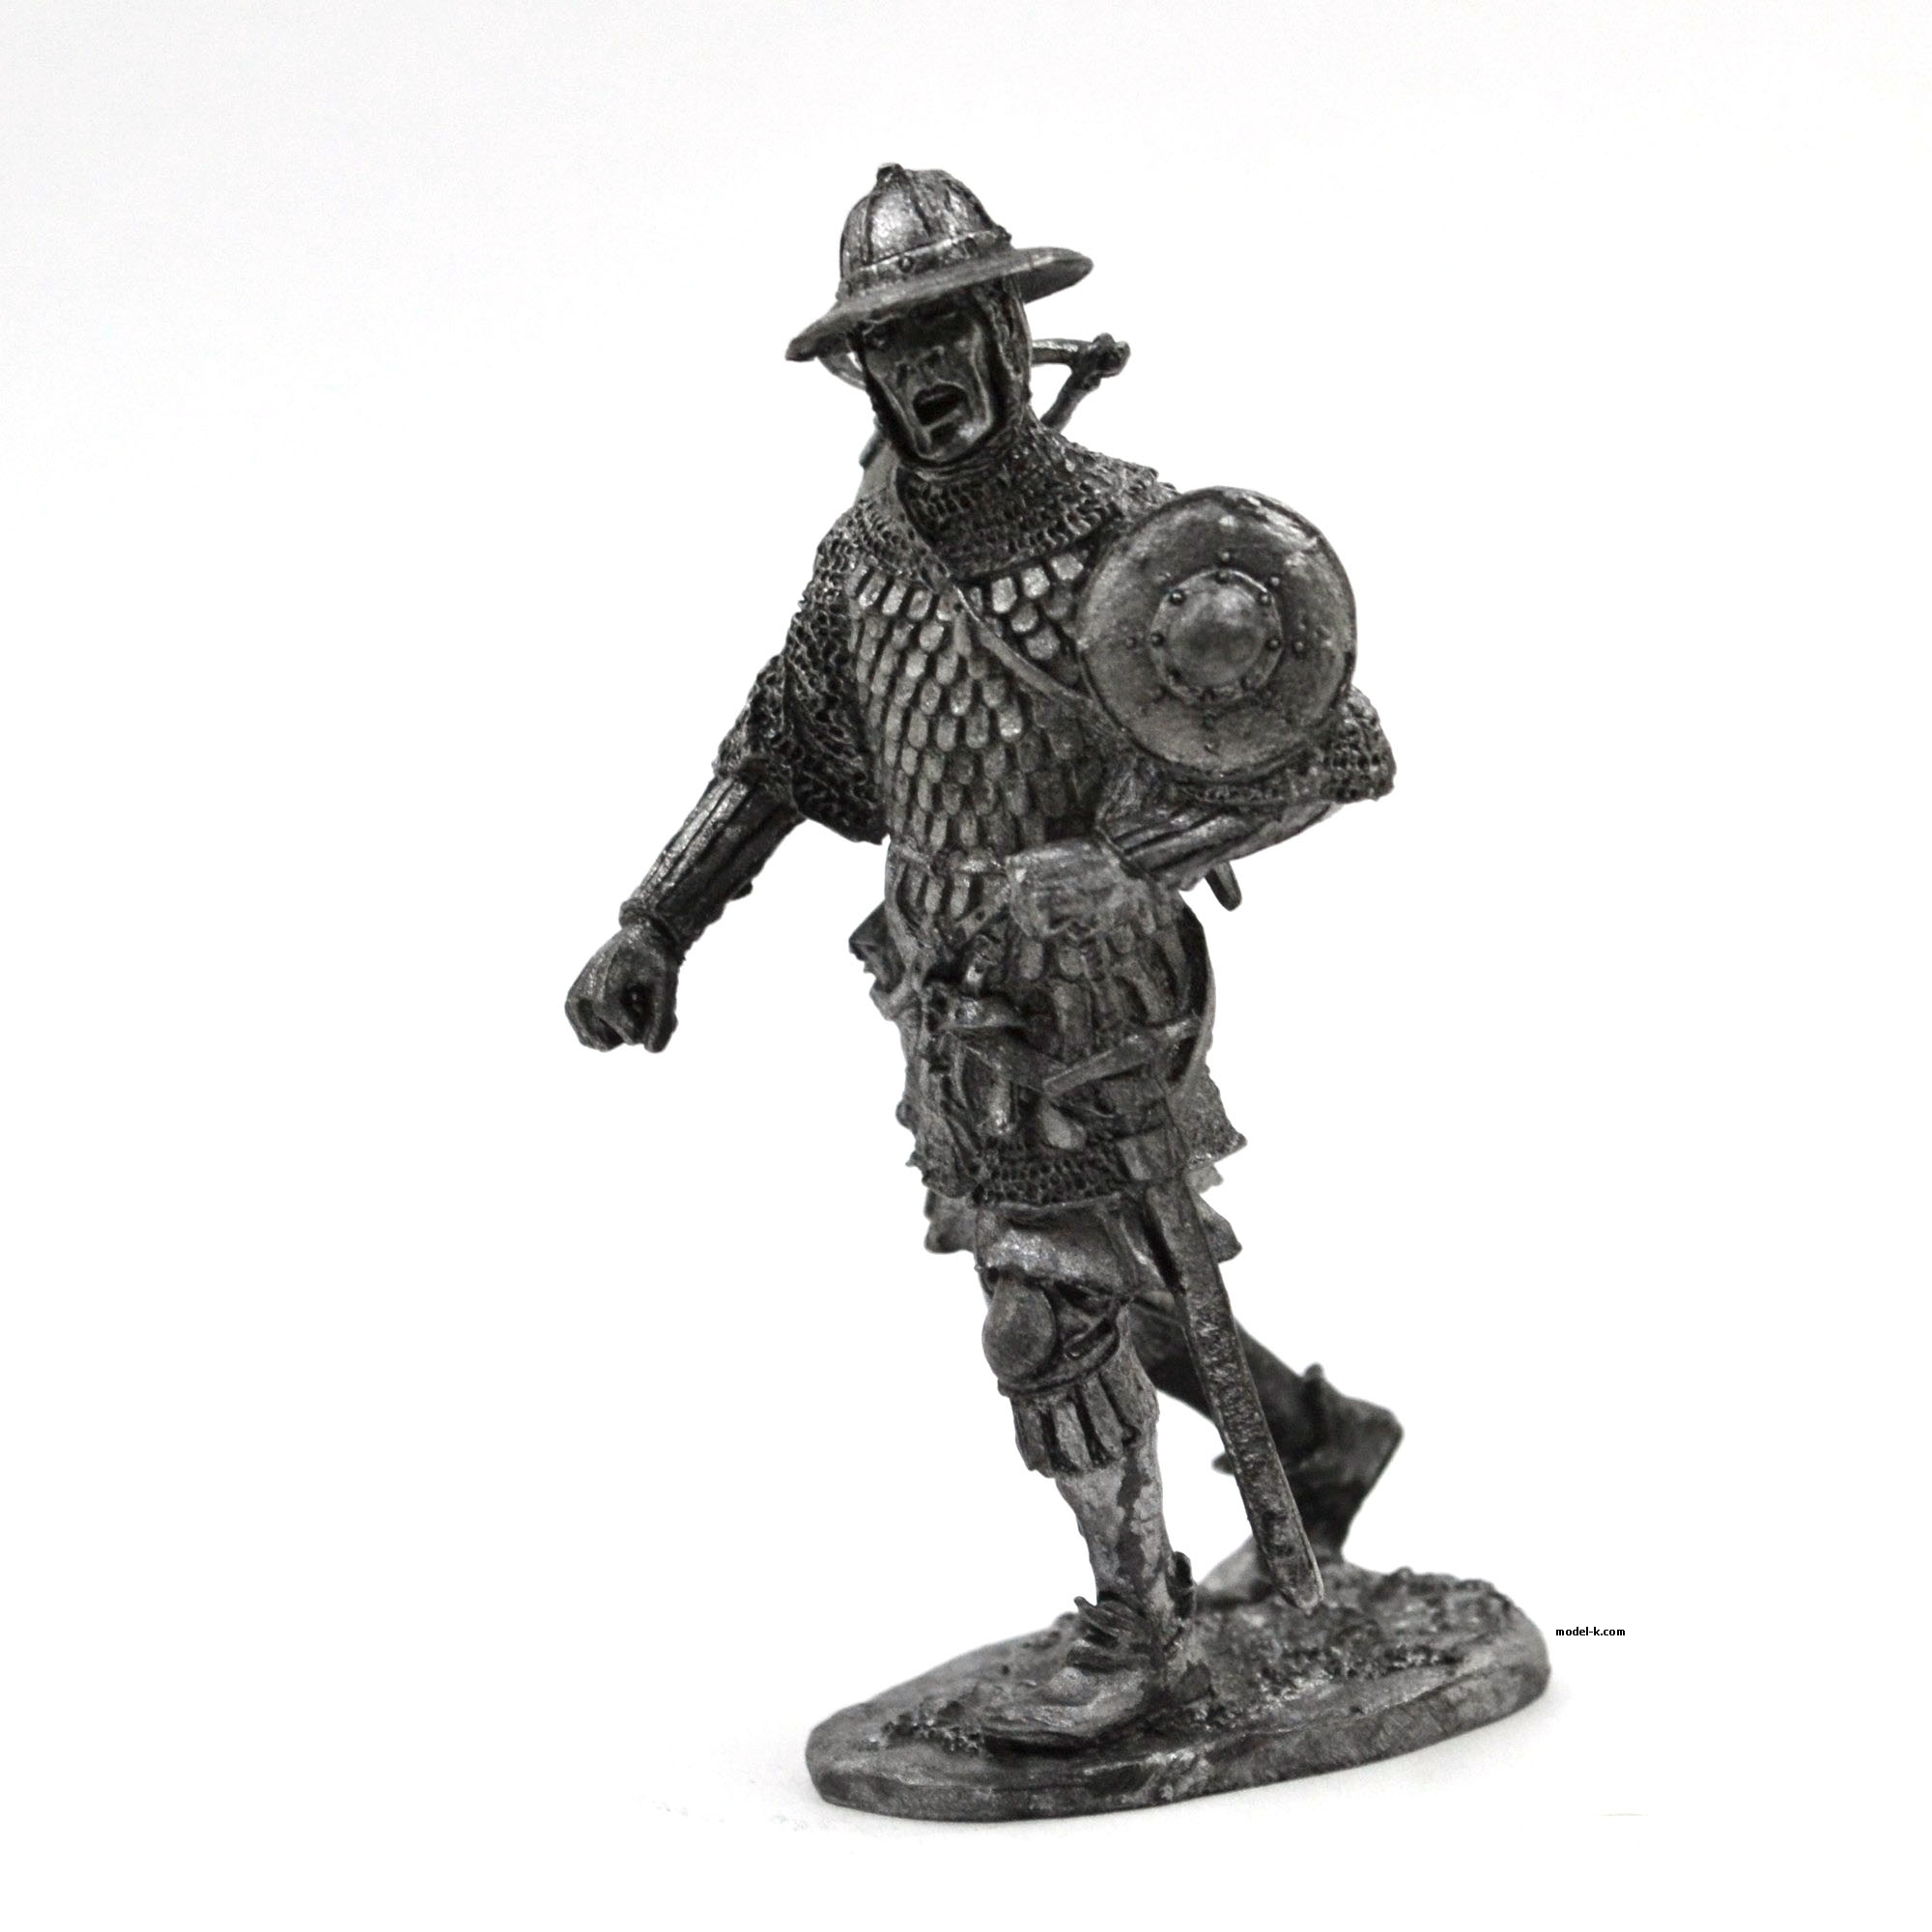 tin 54mm Figurine European crossbowman